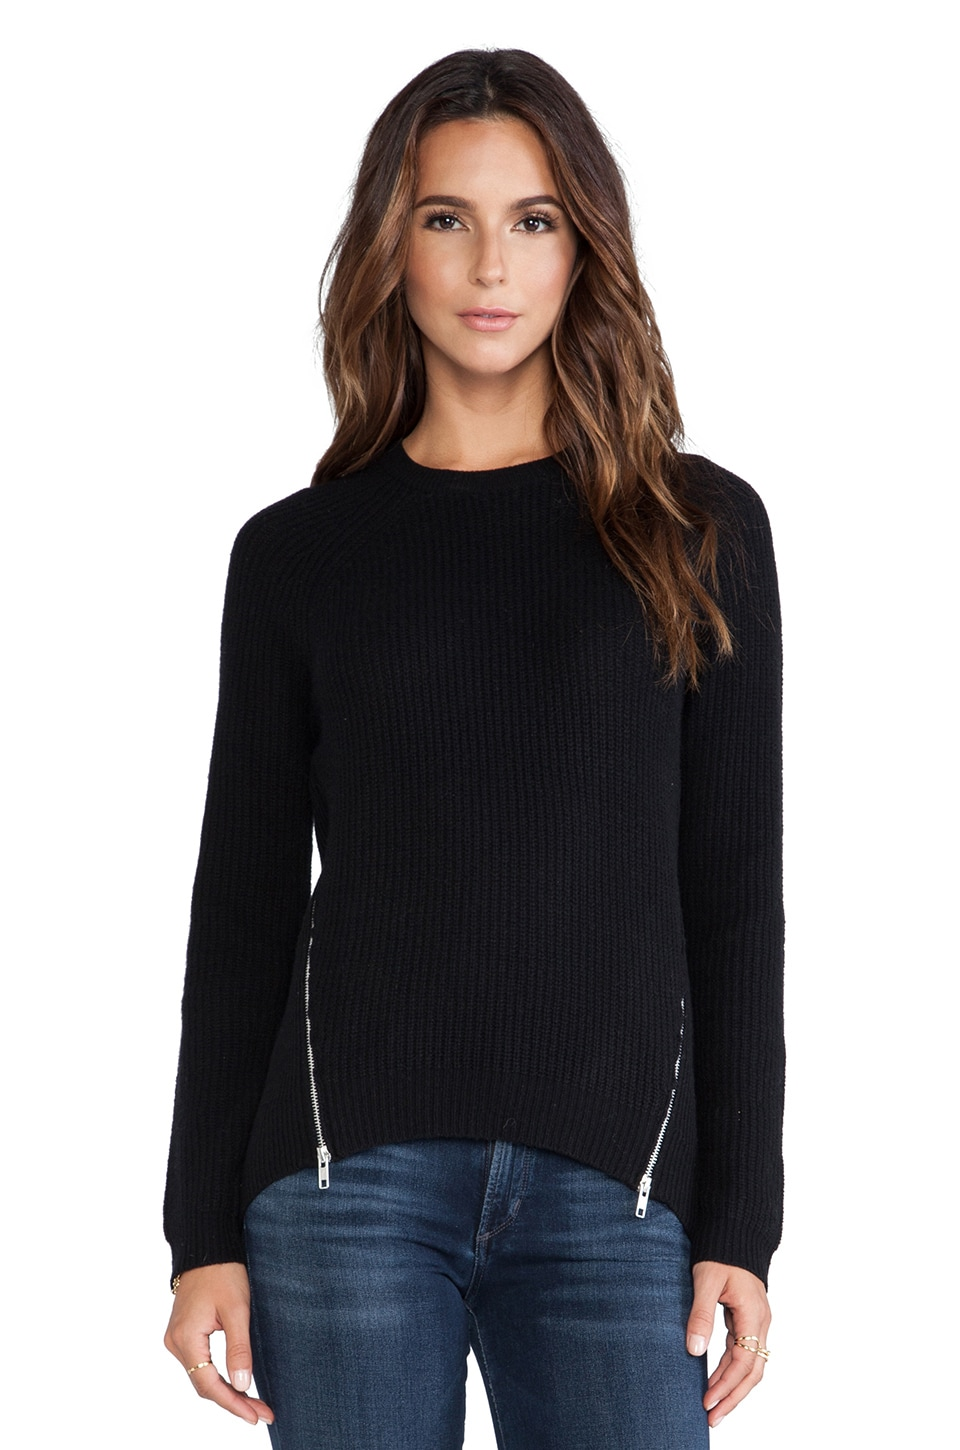 Autumn Cashmere Shaker Stitch Raglan in Black